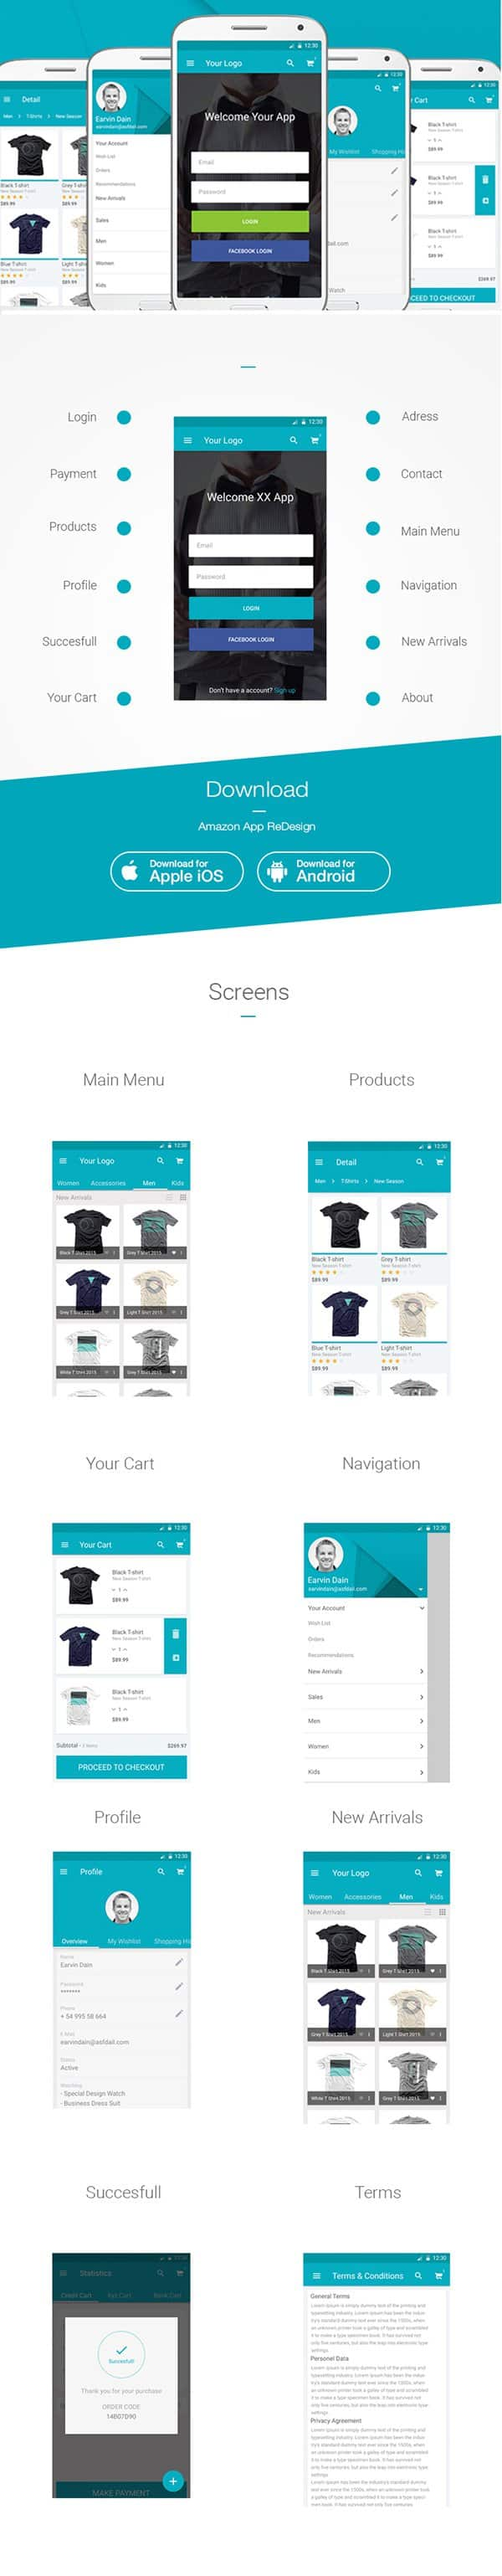 E Commerce App UI PSD - Flat UI Design Templates